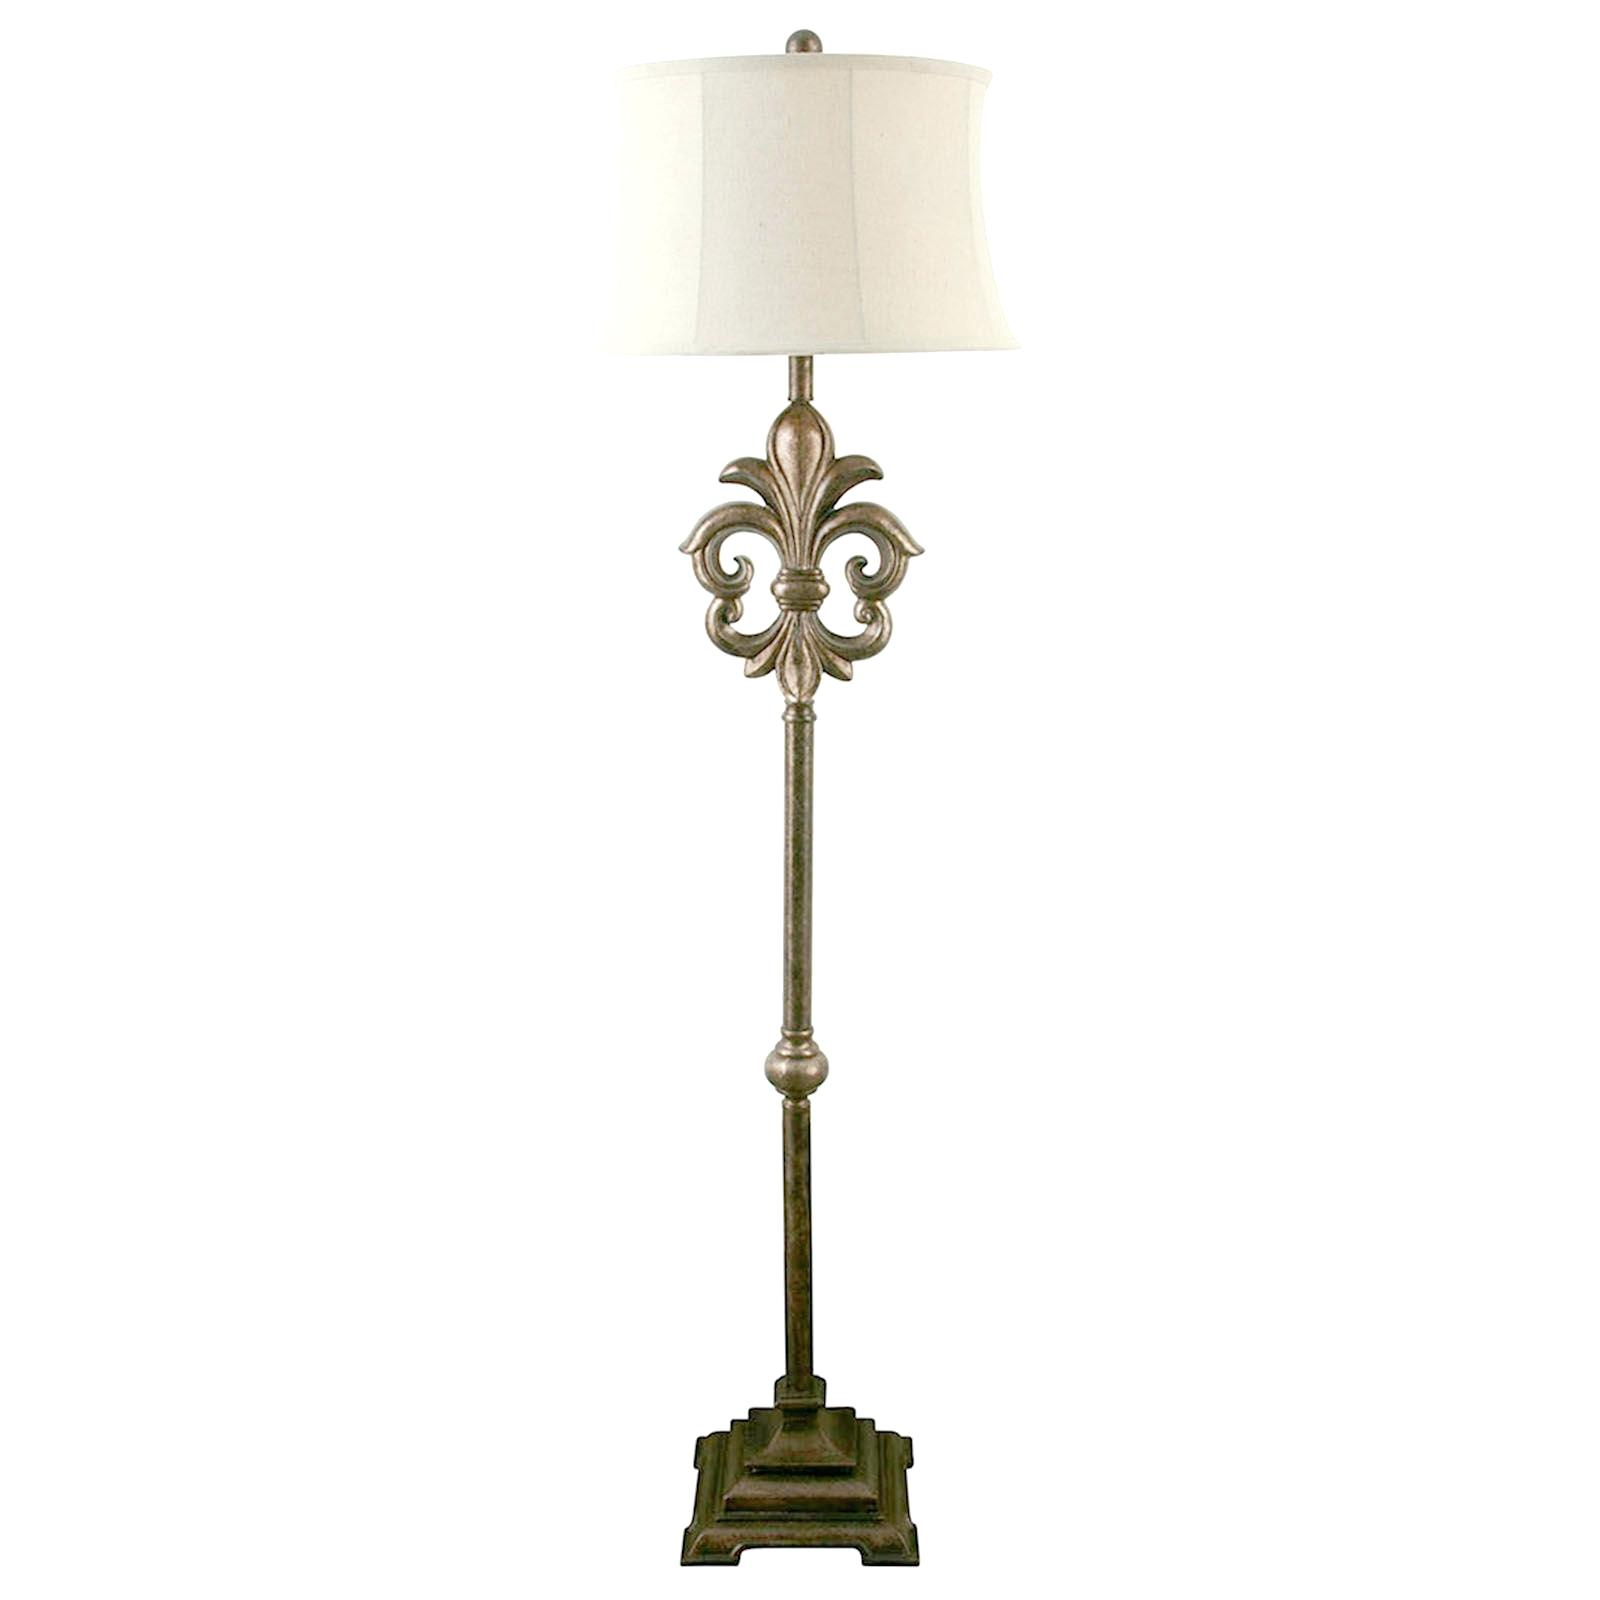 Fleur De Lis Floor Lamp Check Out The Beautiful Table Lamp In Fleur intended for dimensions 1600 X 1600